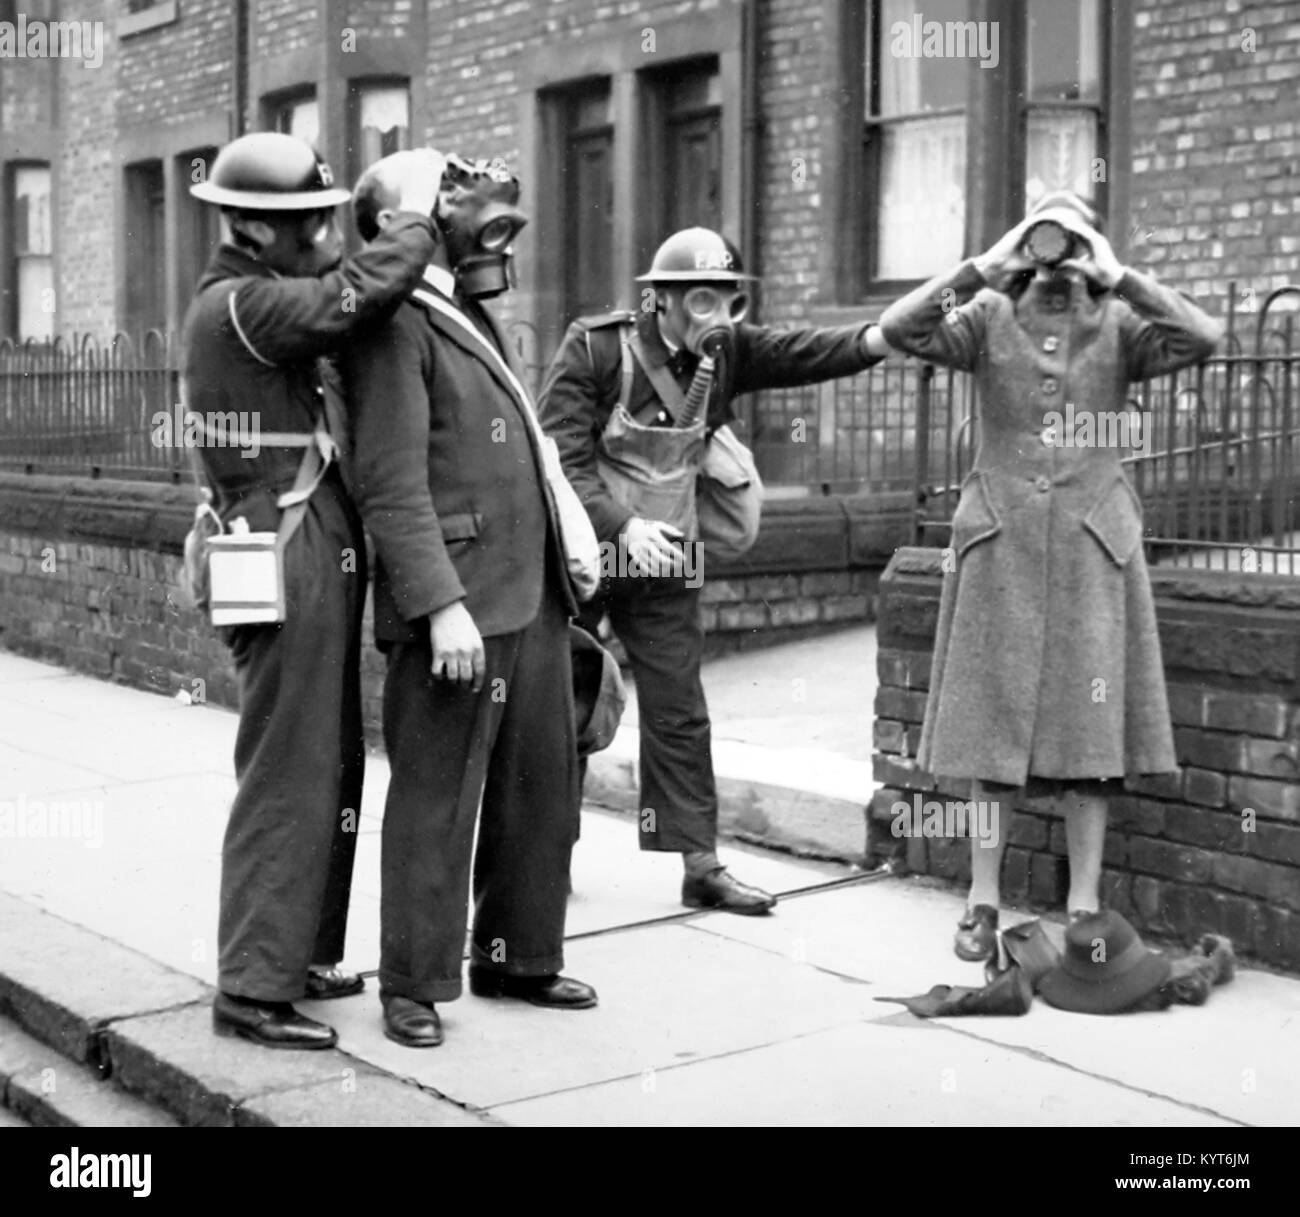 Helping to put on gas masks, ARP training exercise during WW2 - Stock Image